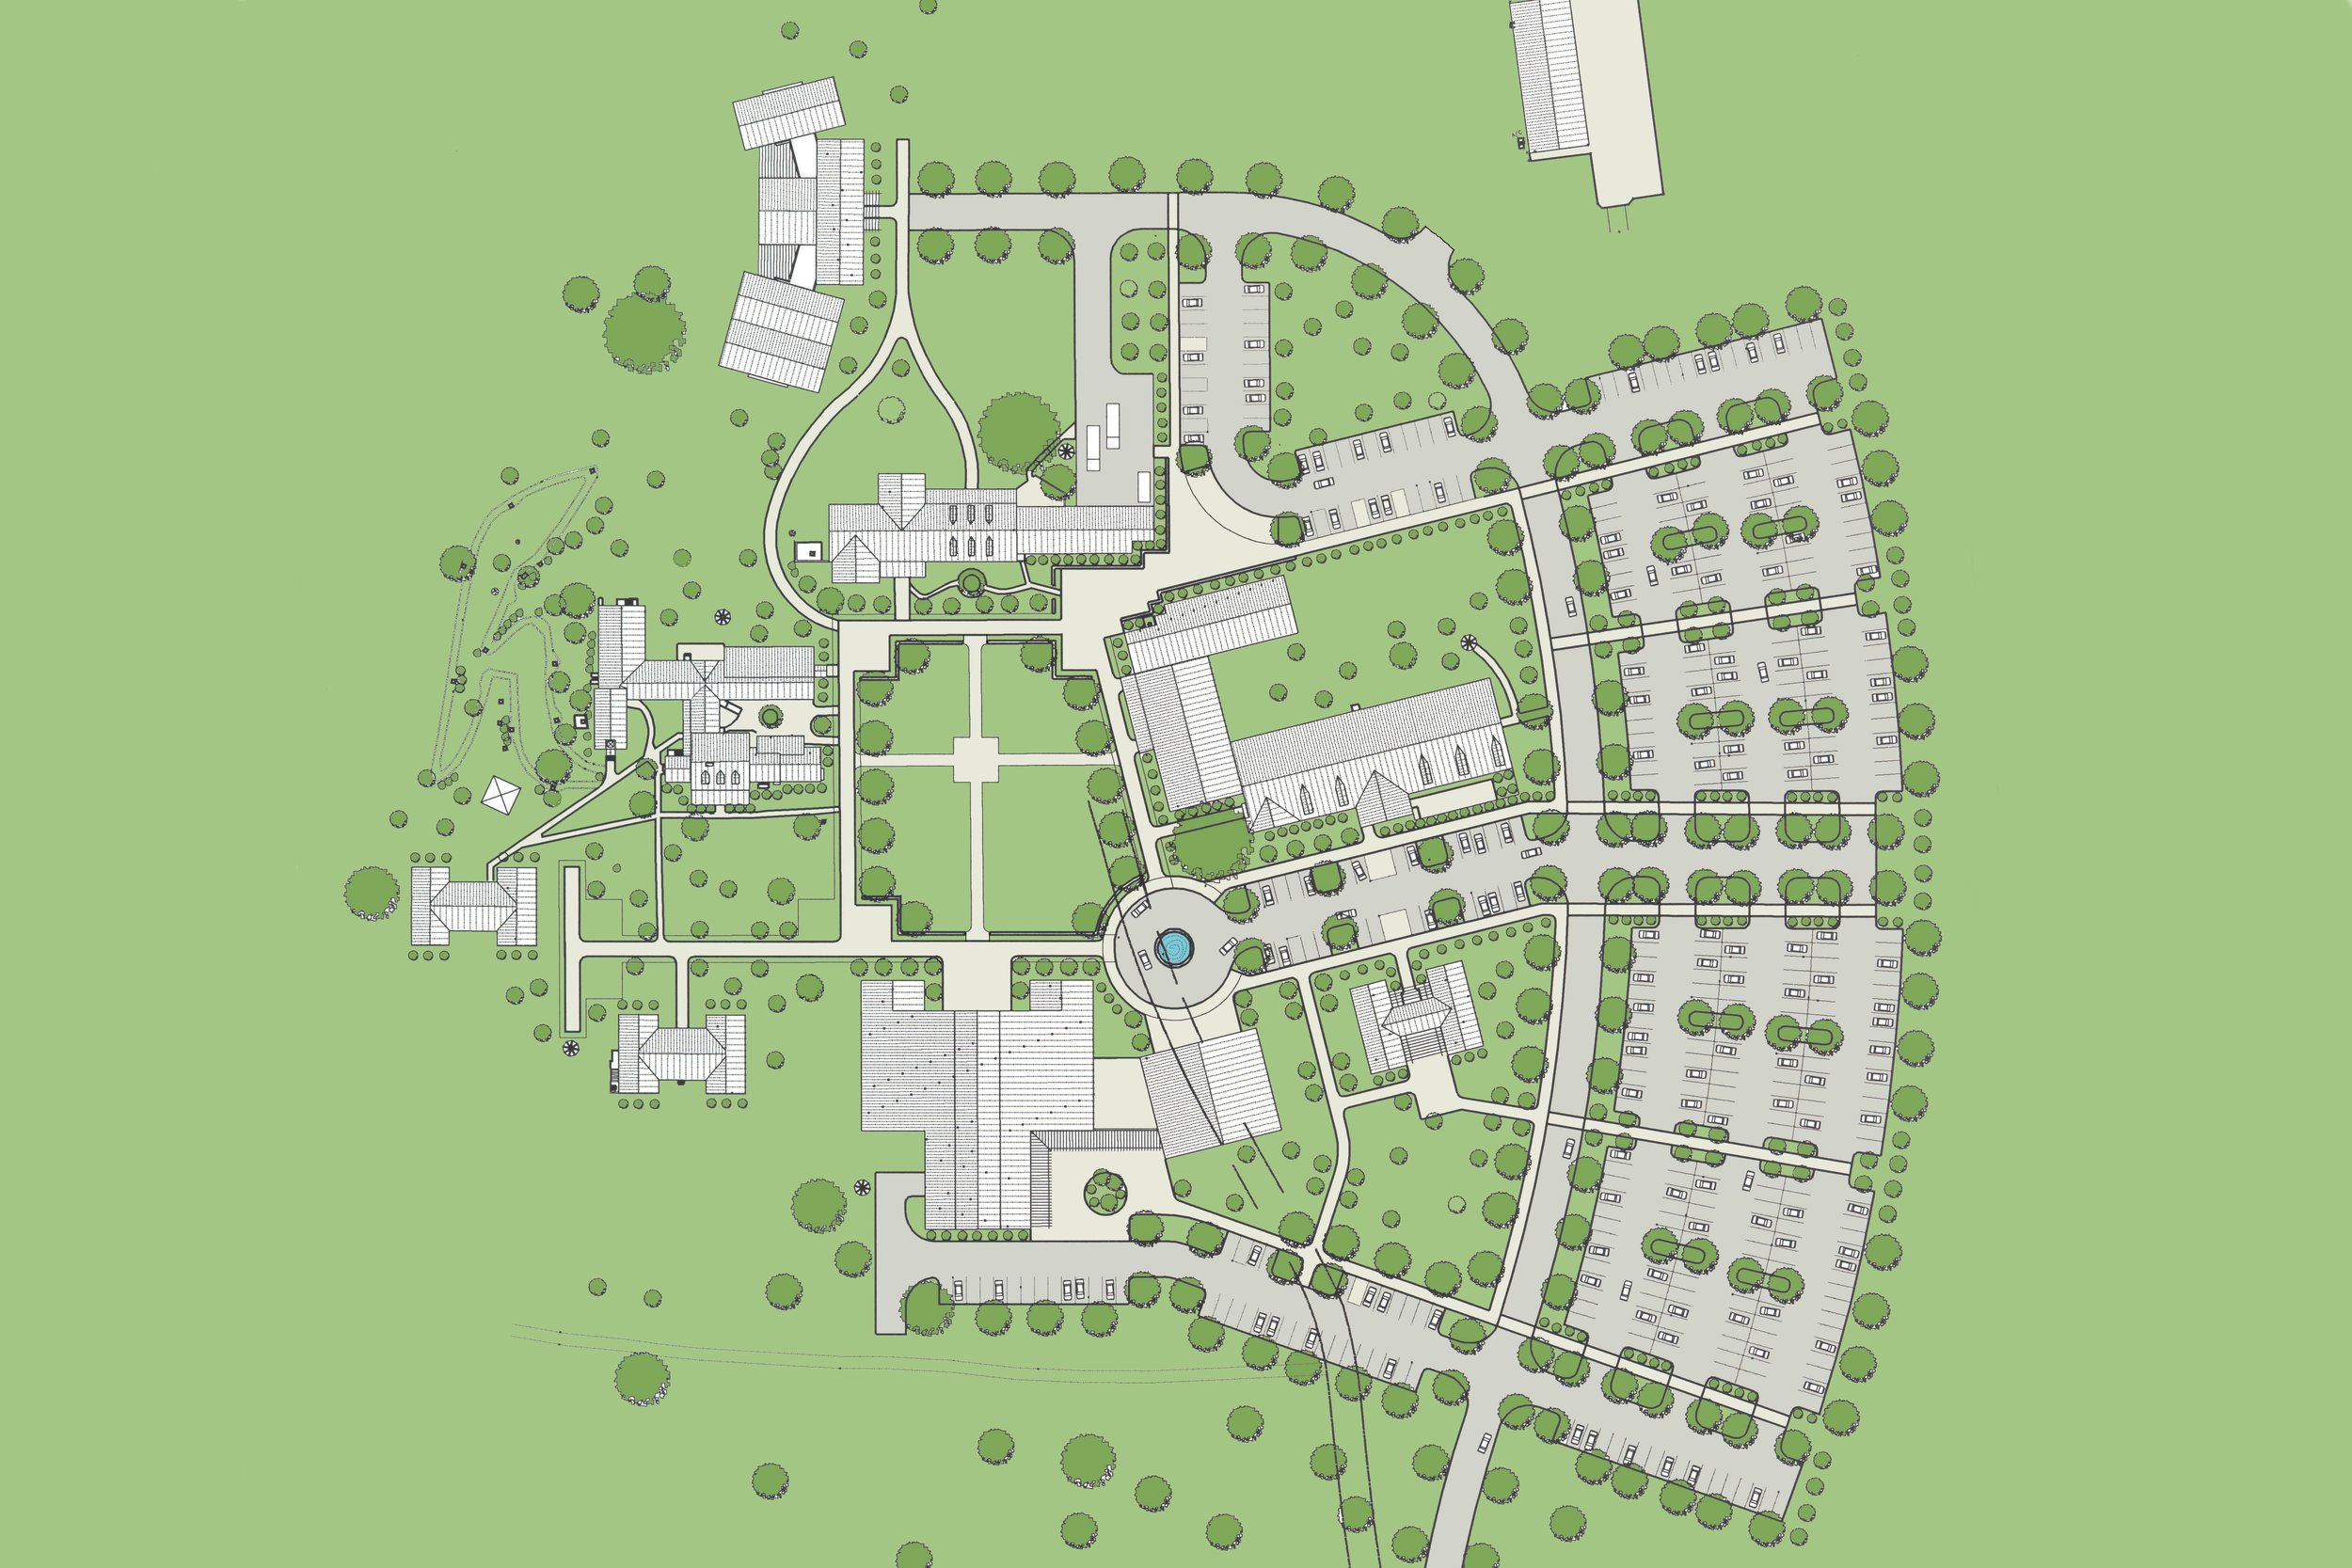 Cumberland Heights Master Plan & Conceptual Building Designs